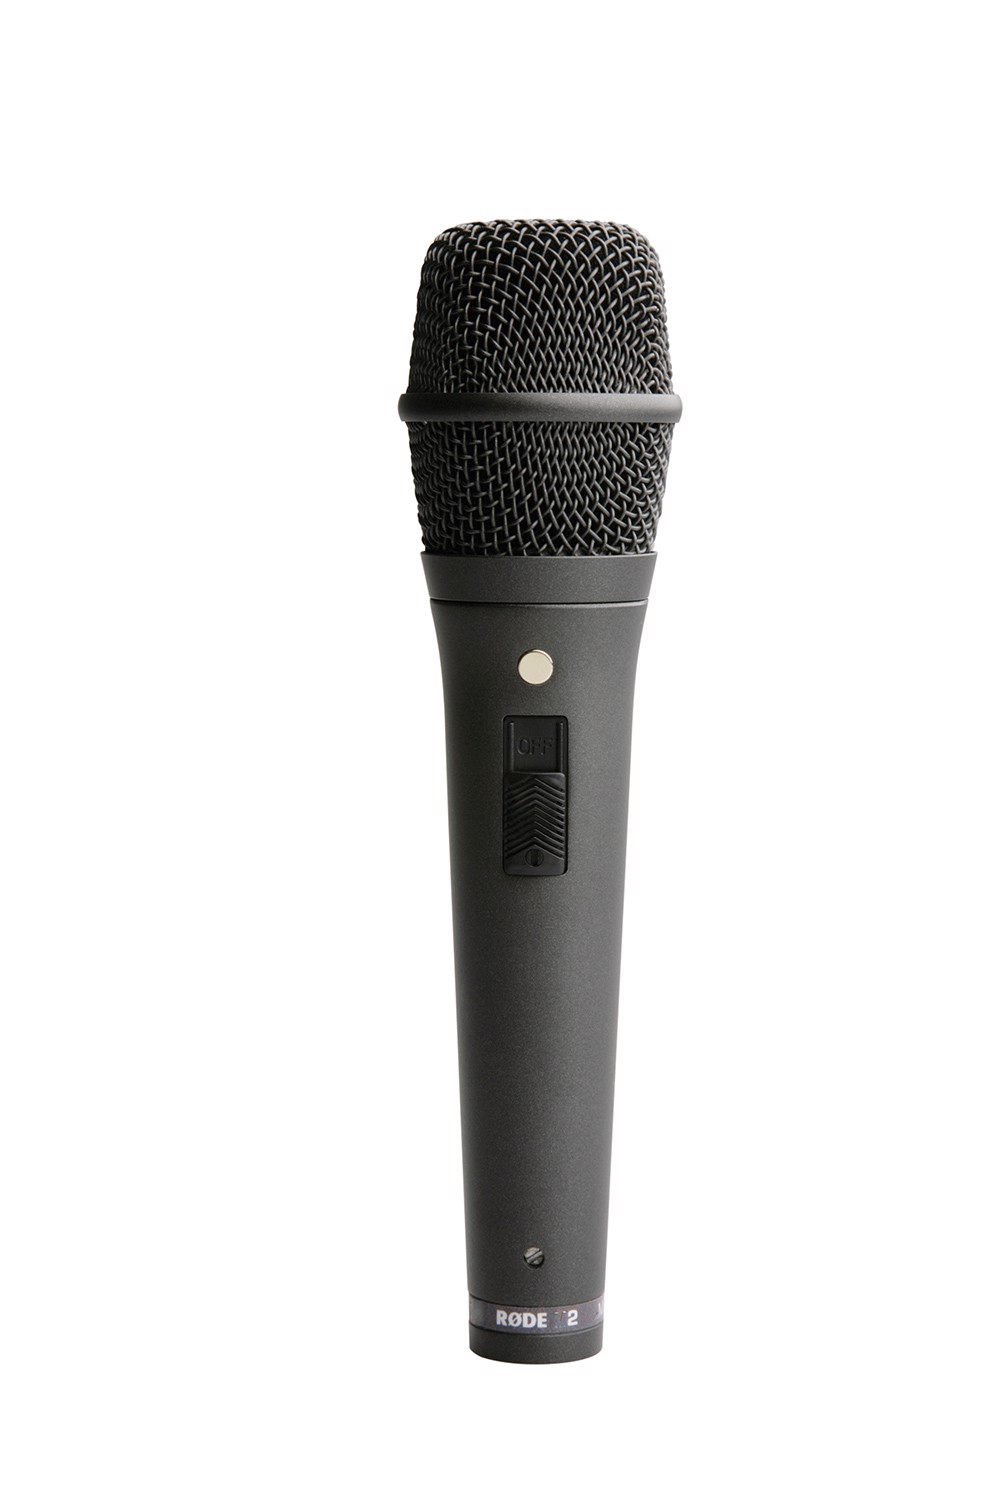 Rode Live Microphone M2